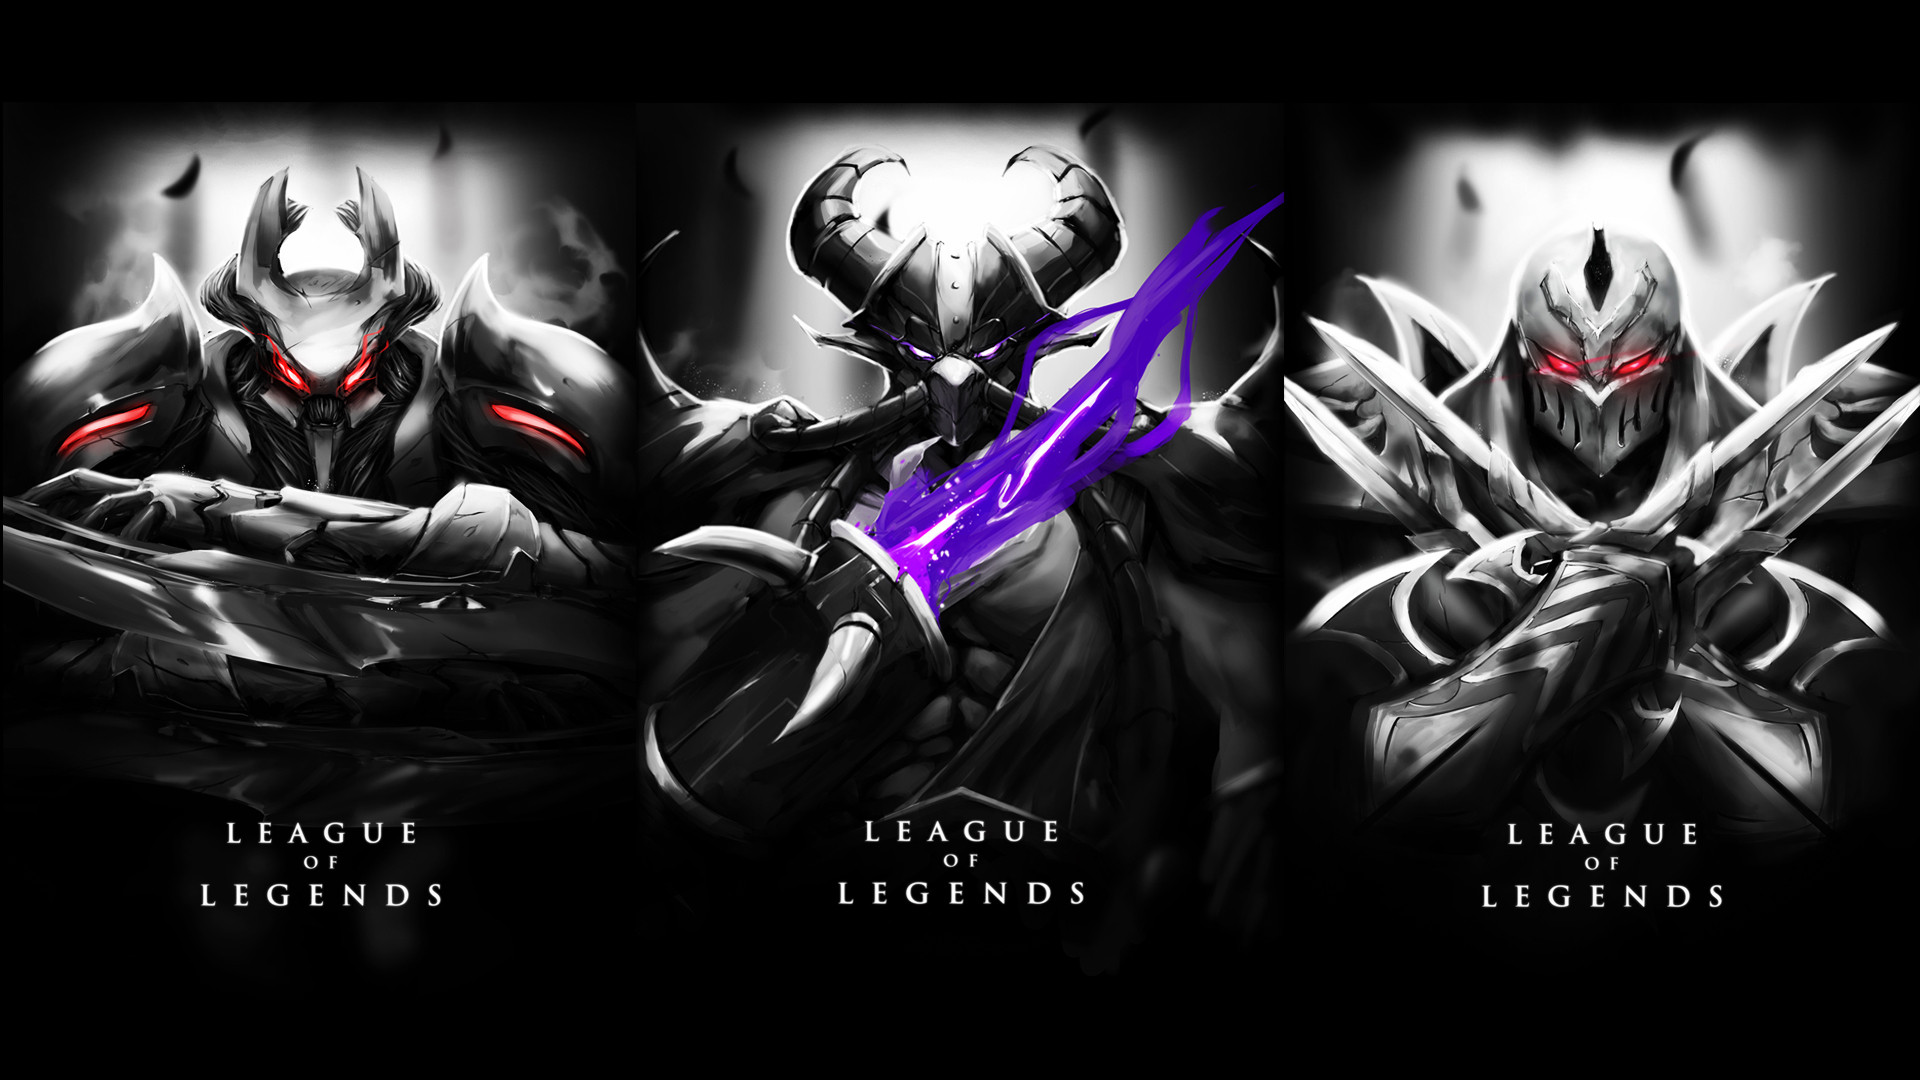 Legends wallpaper | 1920x1080 | #42787